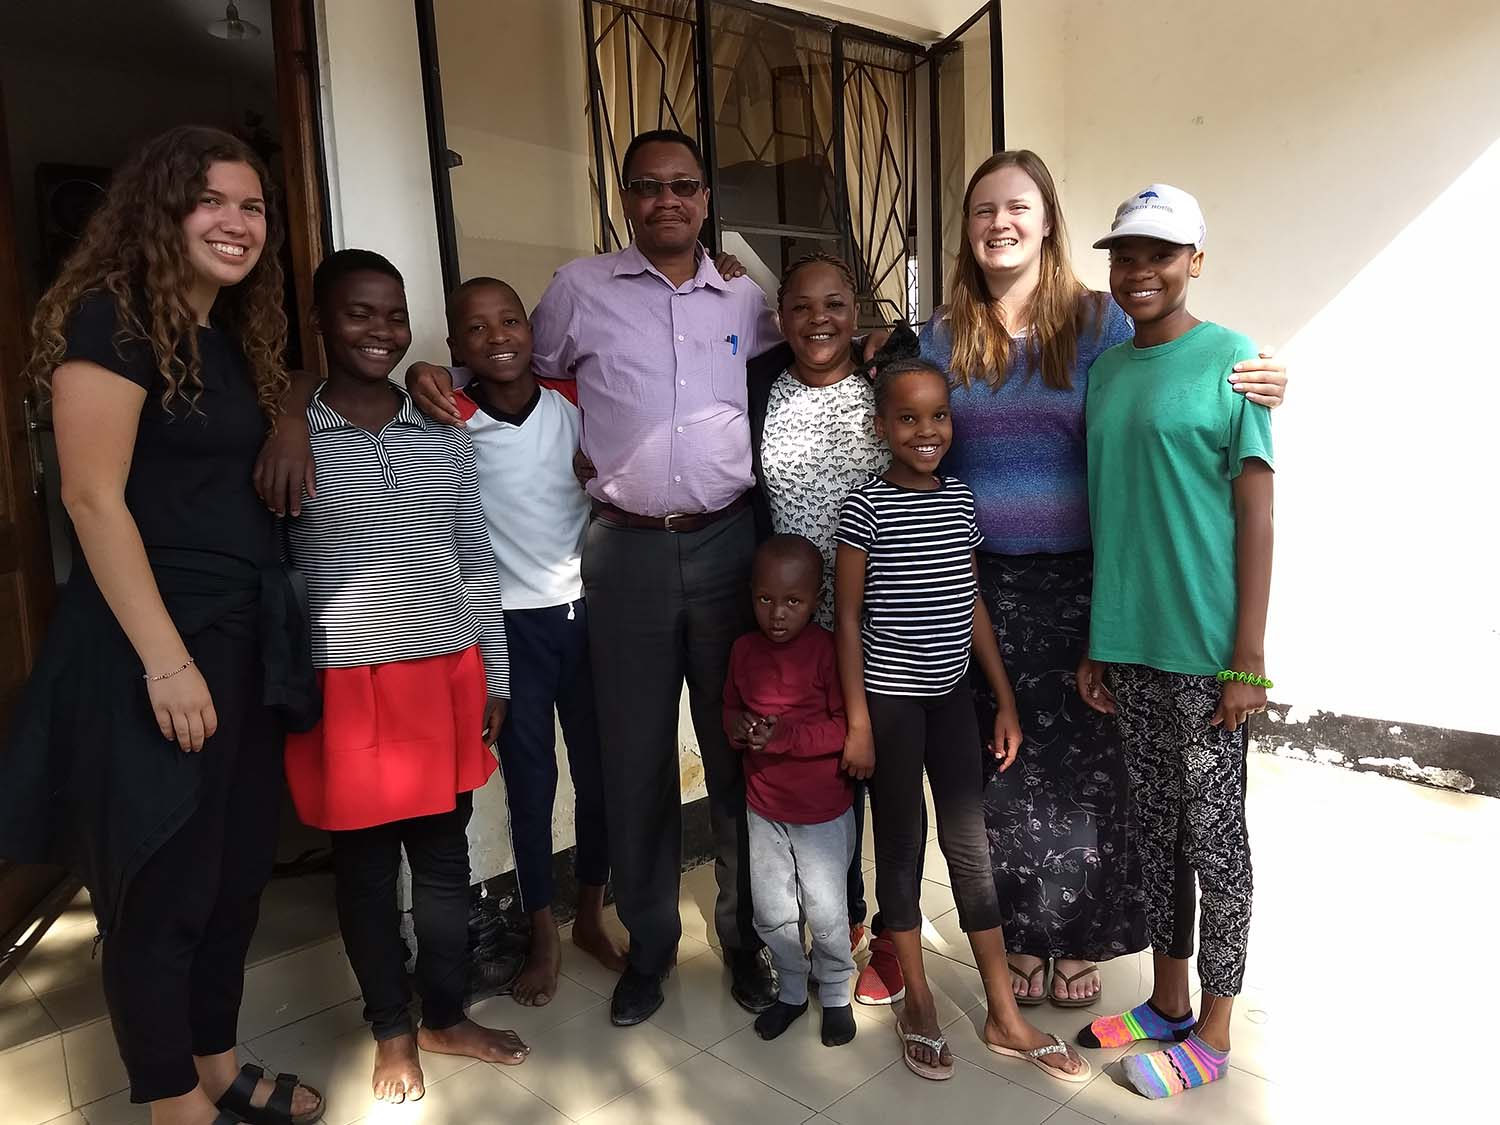 Andi with her exchange family in Tanzania